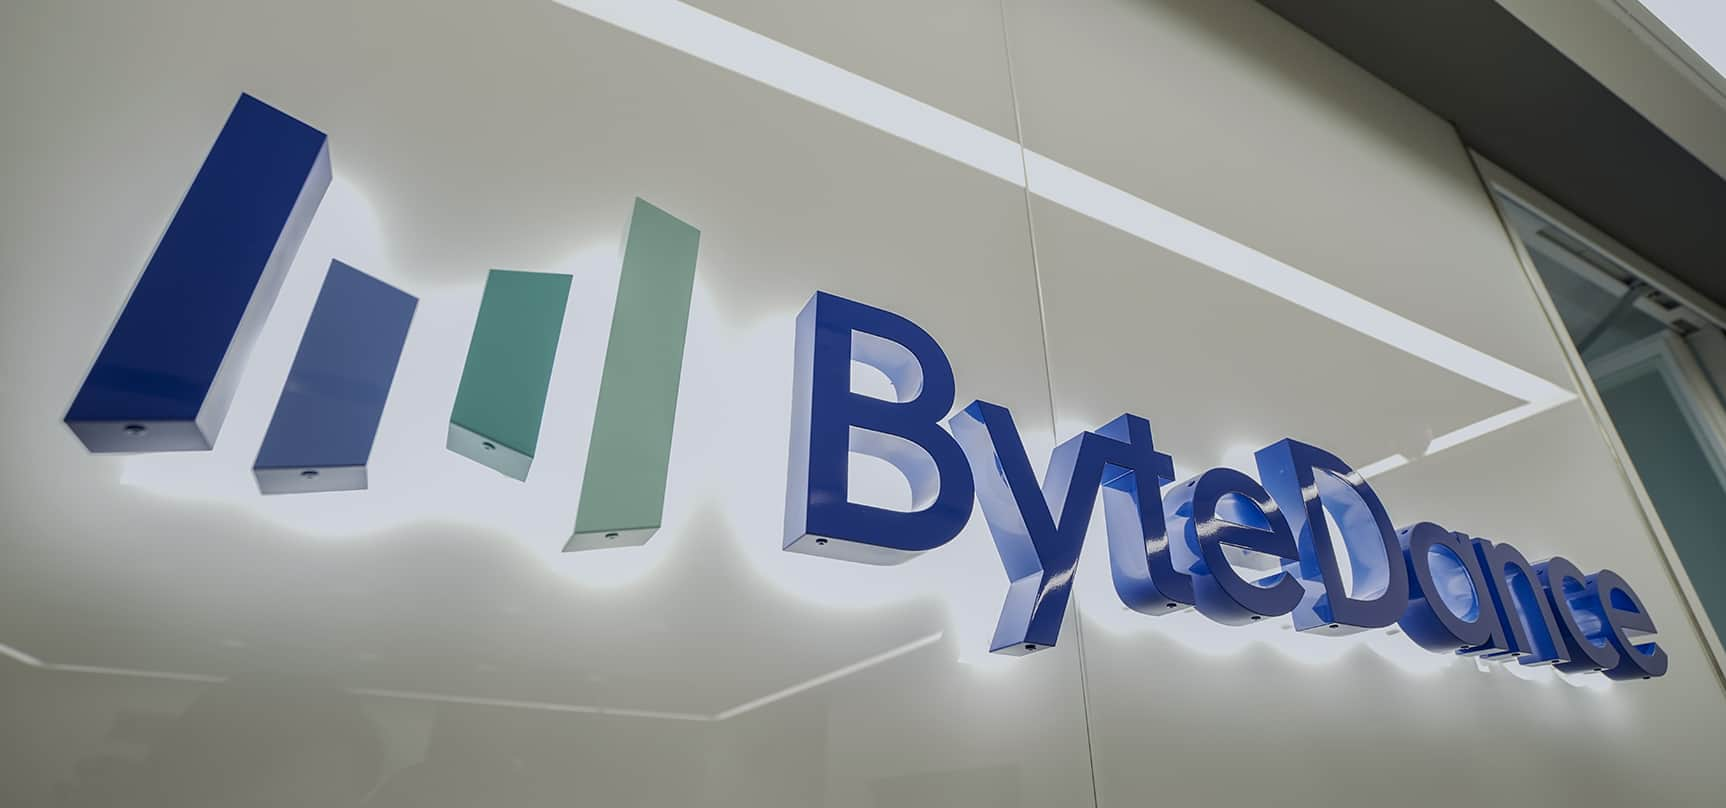 One of the China tech giants, Bytedance